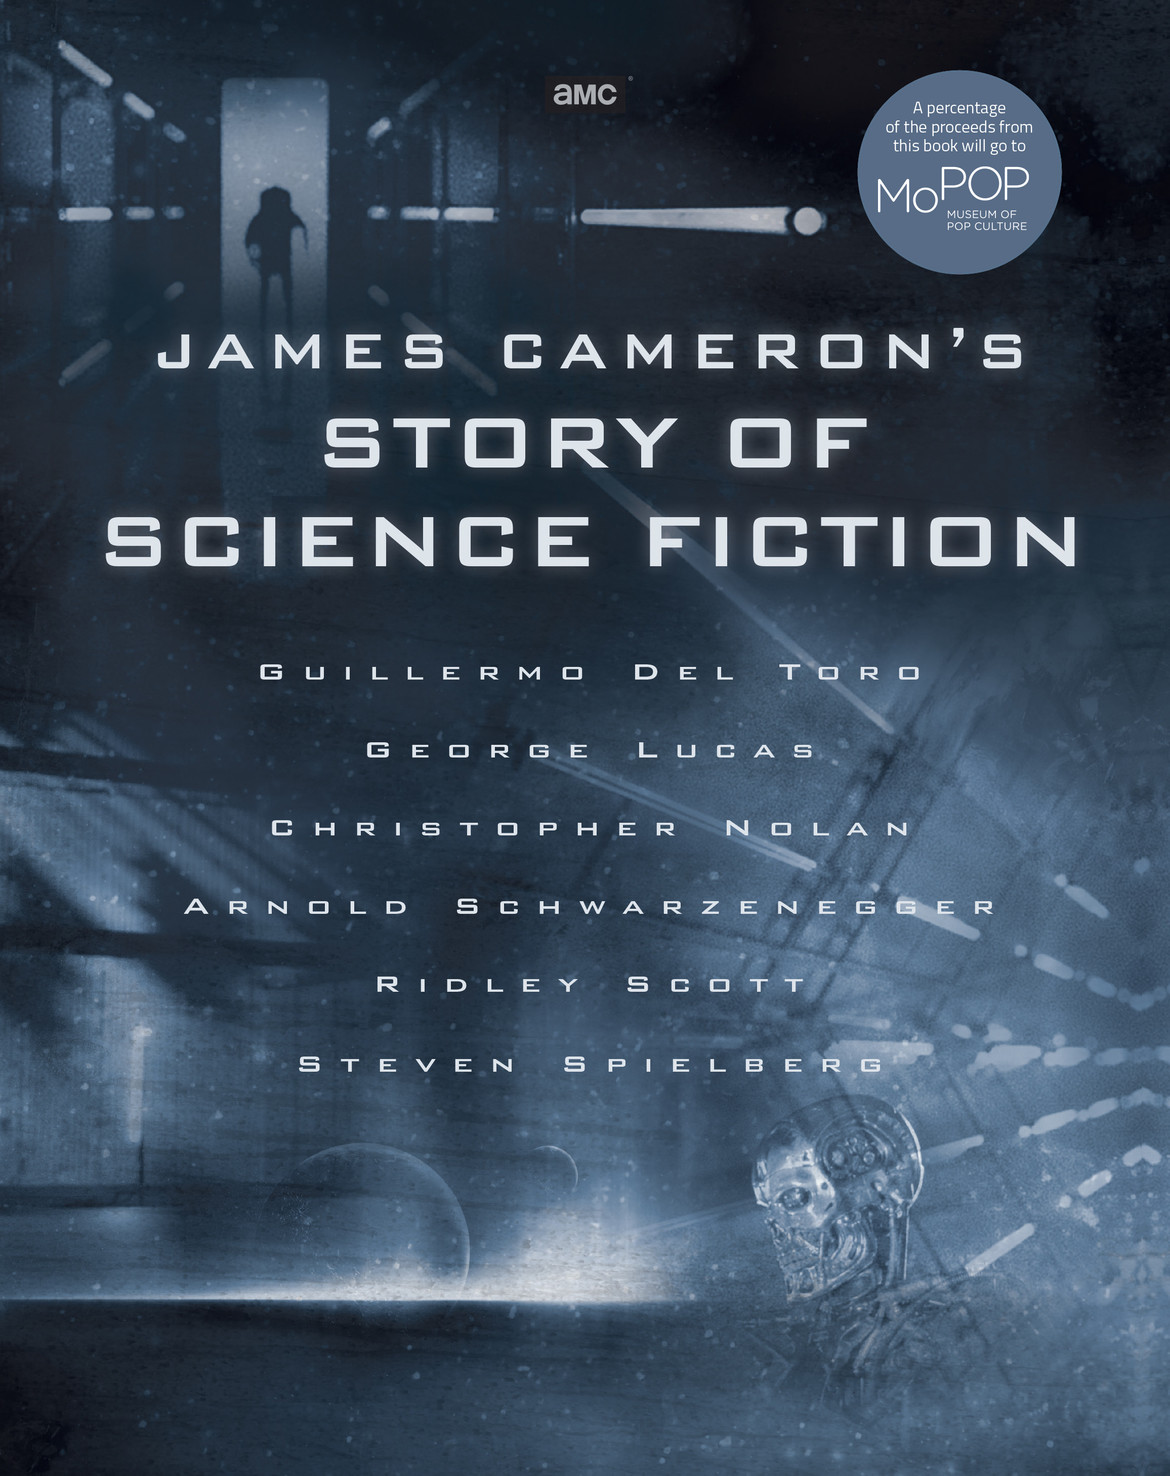 james cameron's story of science fiction cover